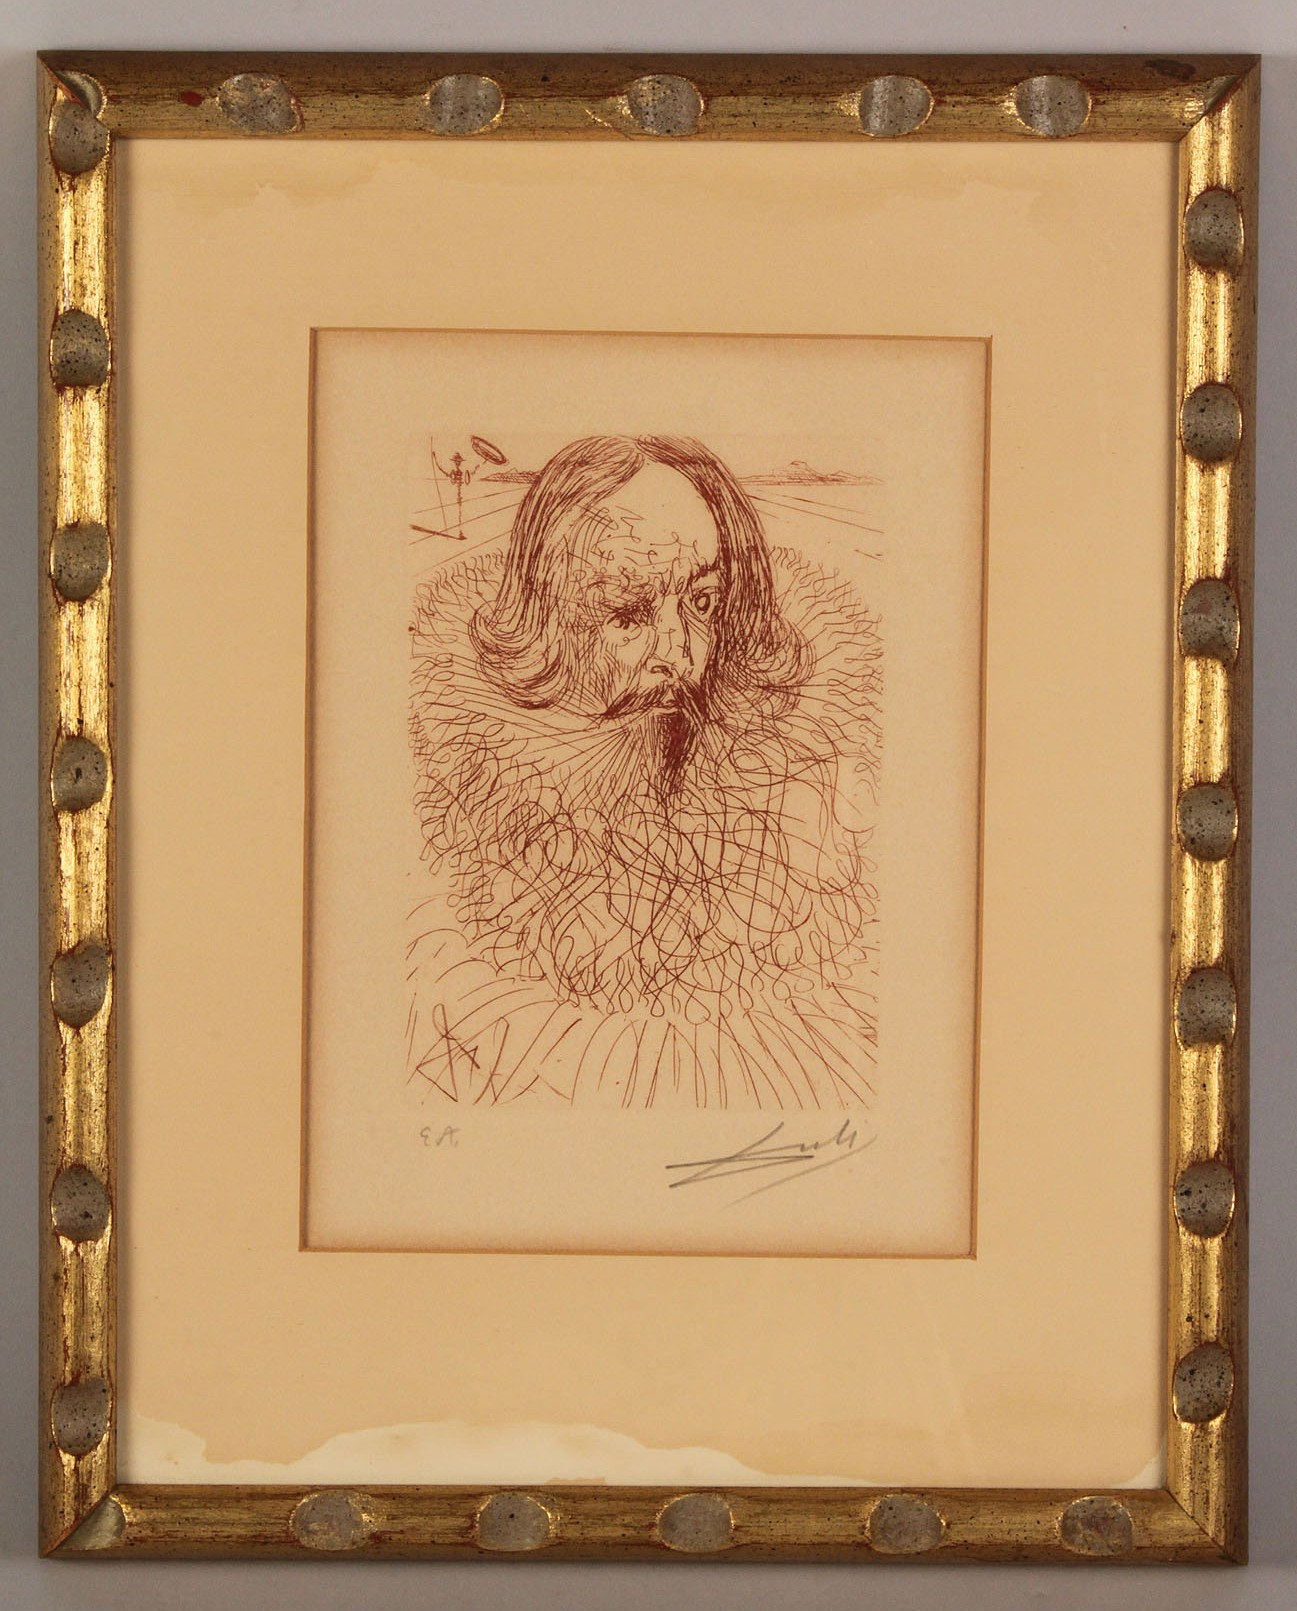 Lot 341 Salvador Dali Etching Quot Cervantes Quot Amp Litho